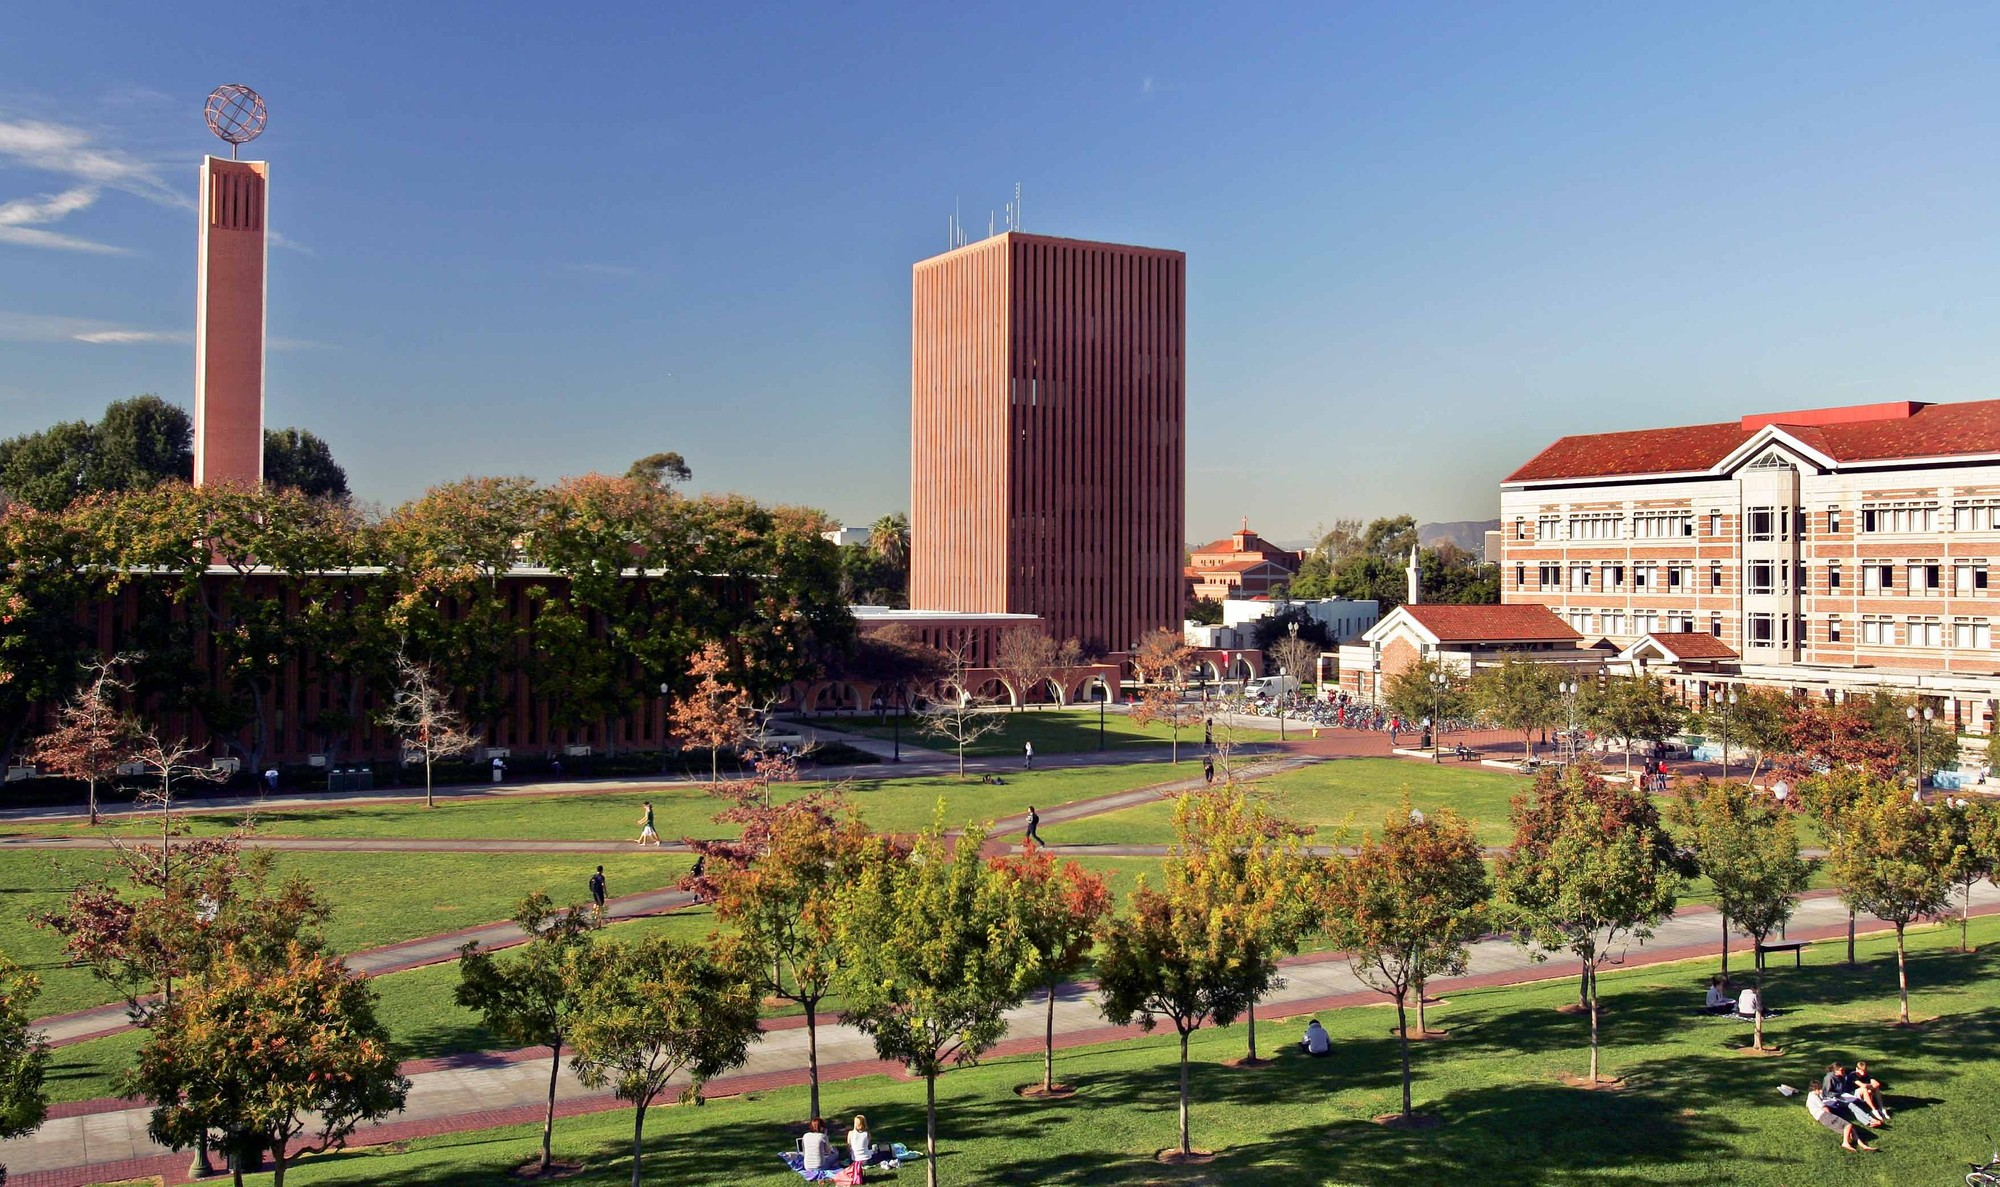 A view of USC's Rossier School of Education buildings with the grass quad in the foreground